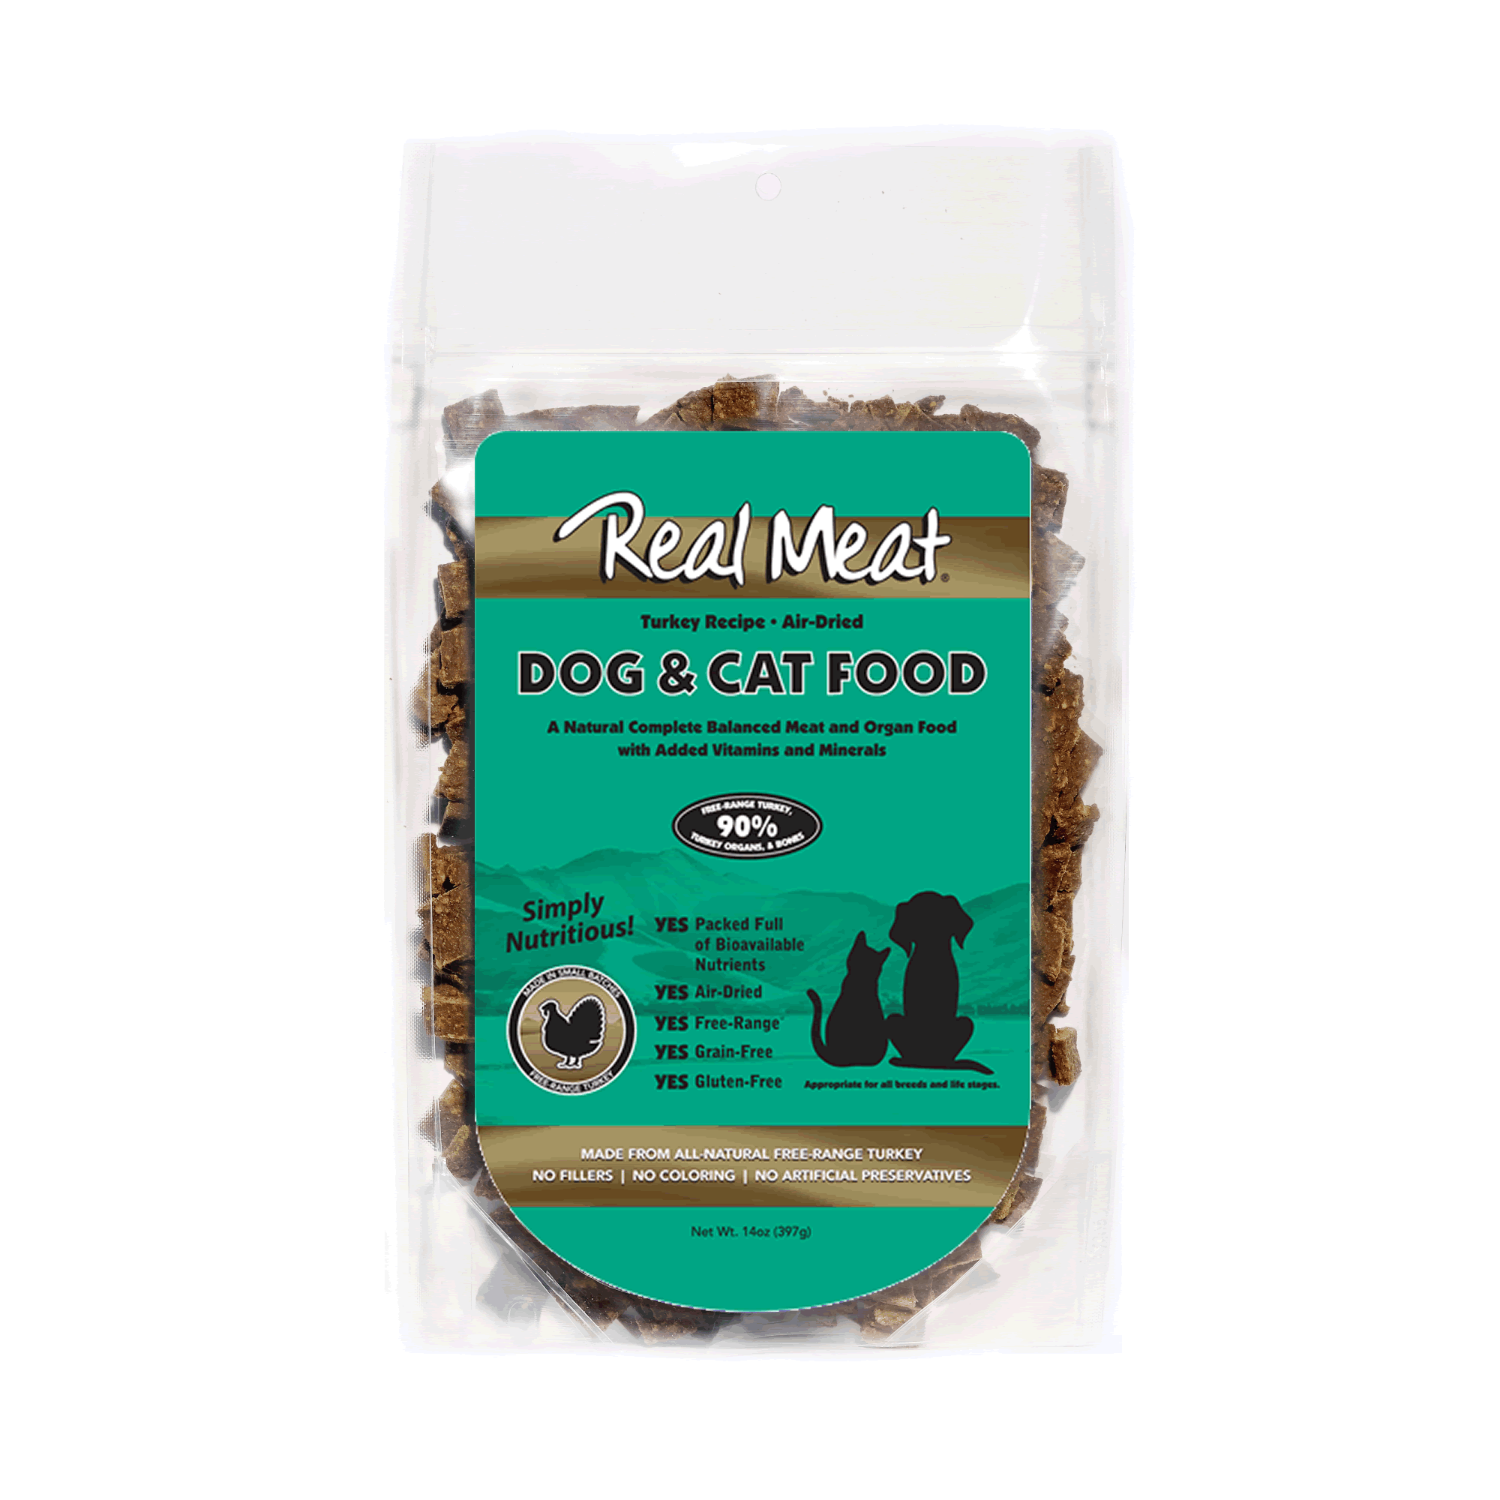 Real Meat Dog and Cat Food - Turkey